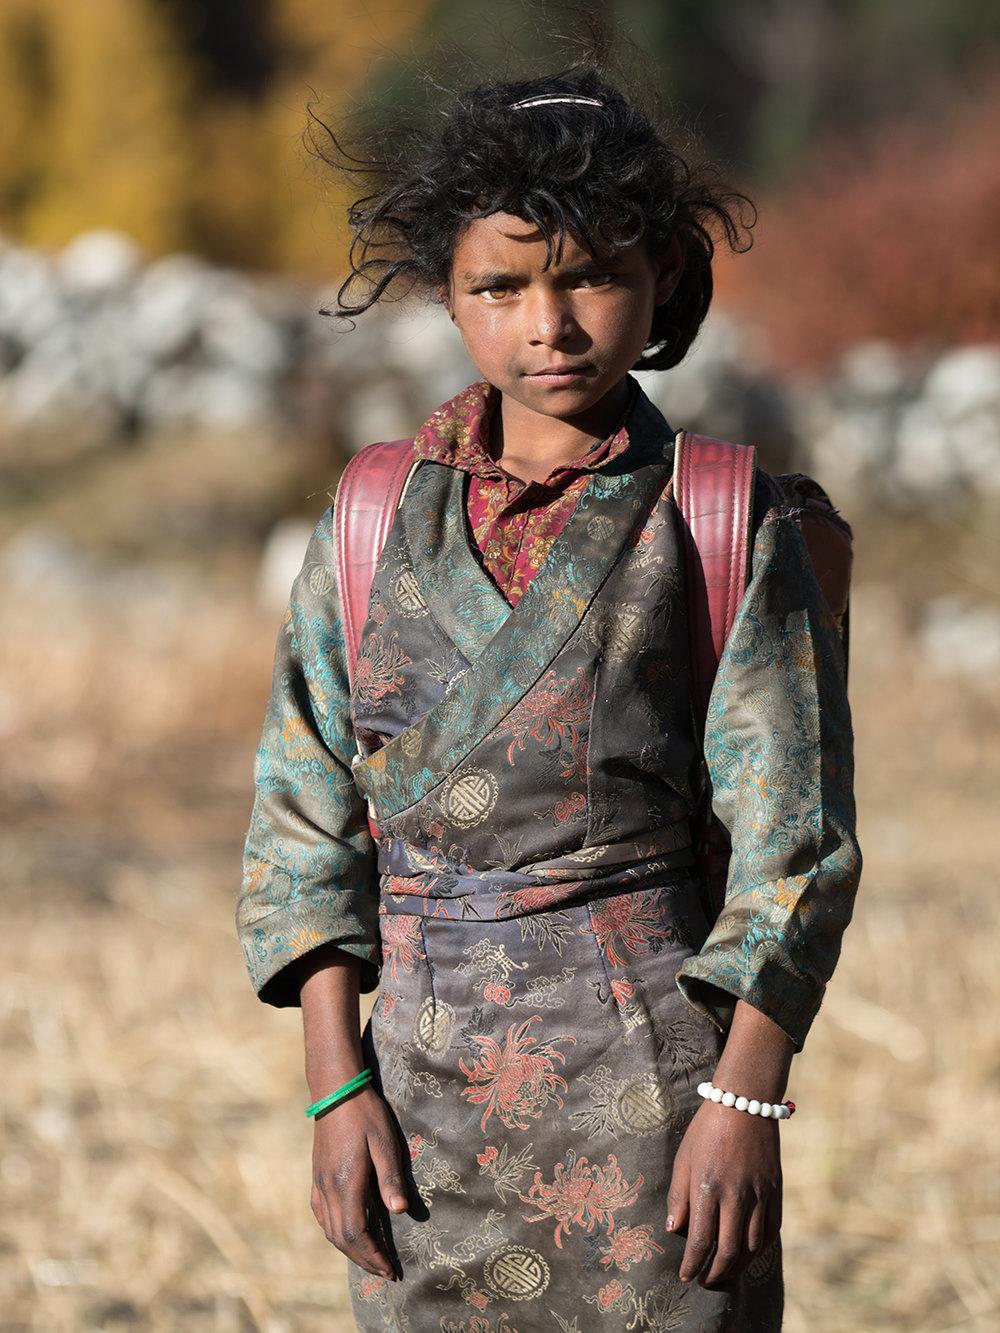 nepali-children-education.jpg